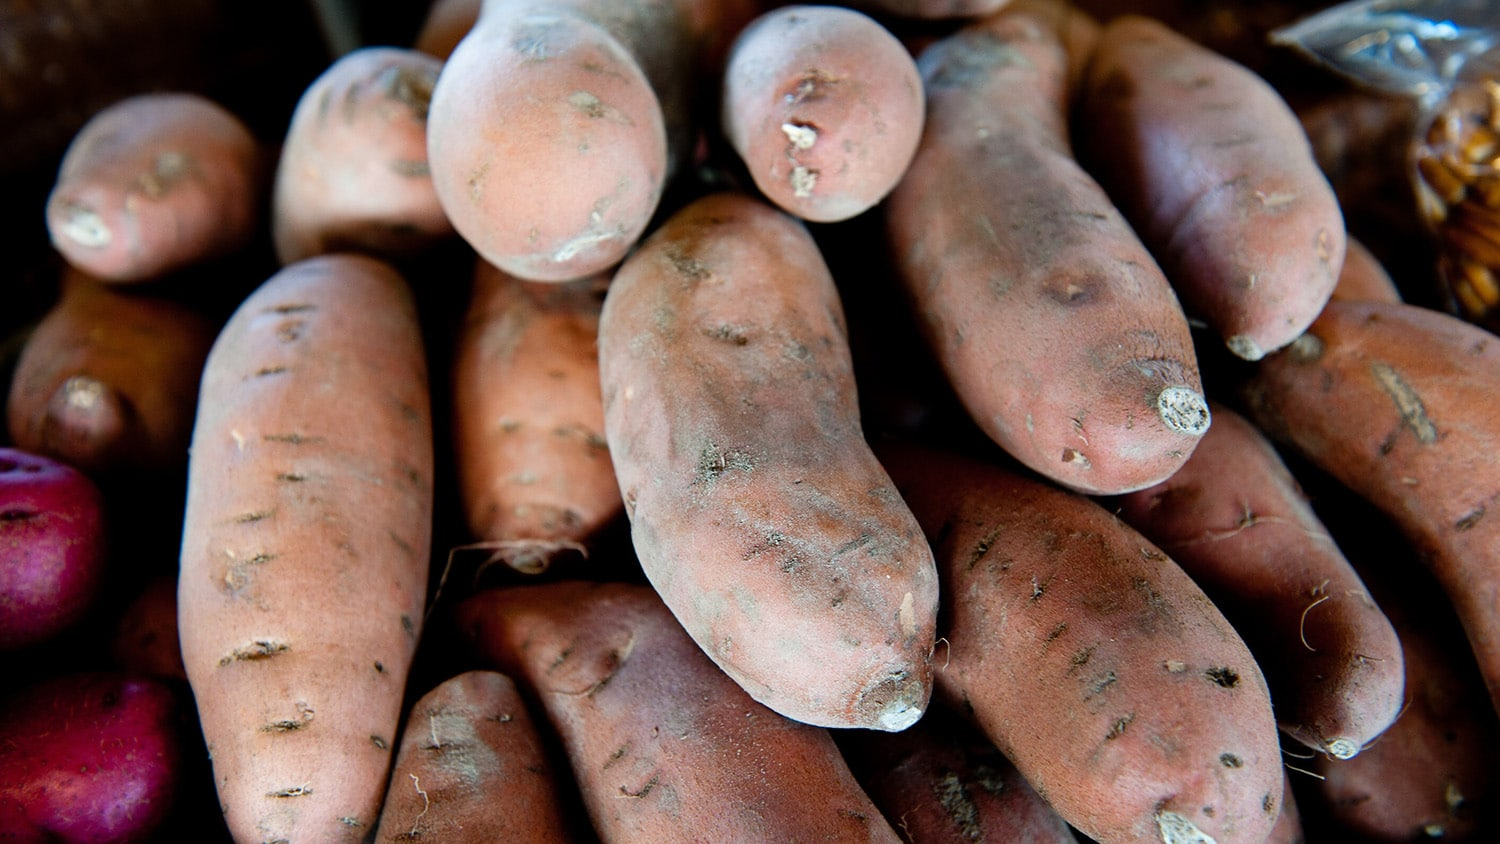 A stack of sweet potatoes at the farmers market